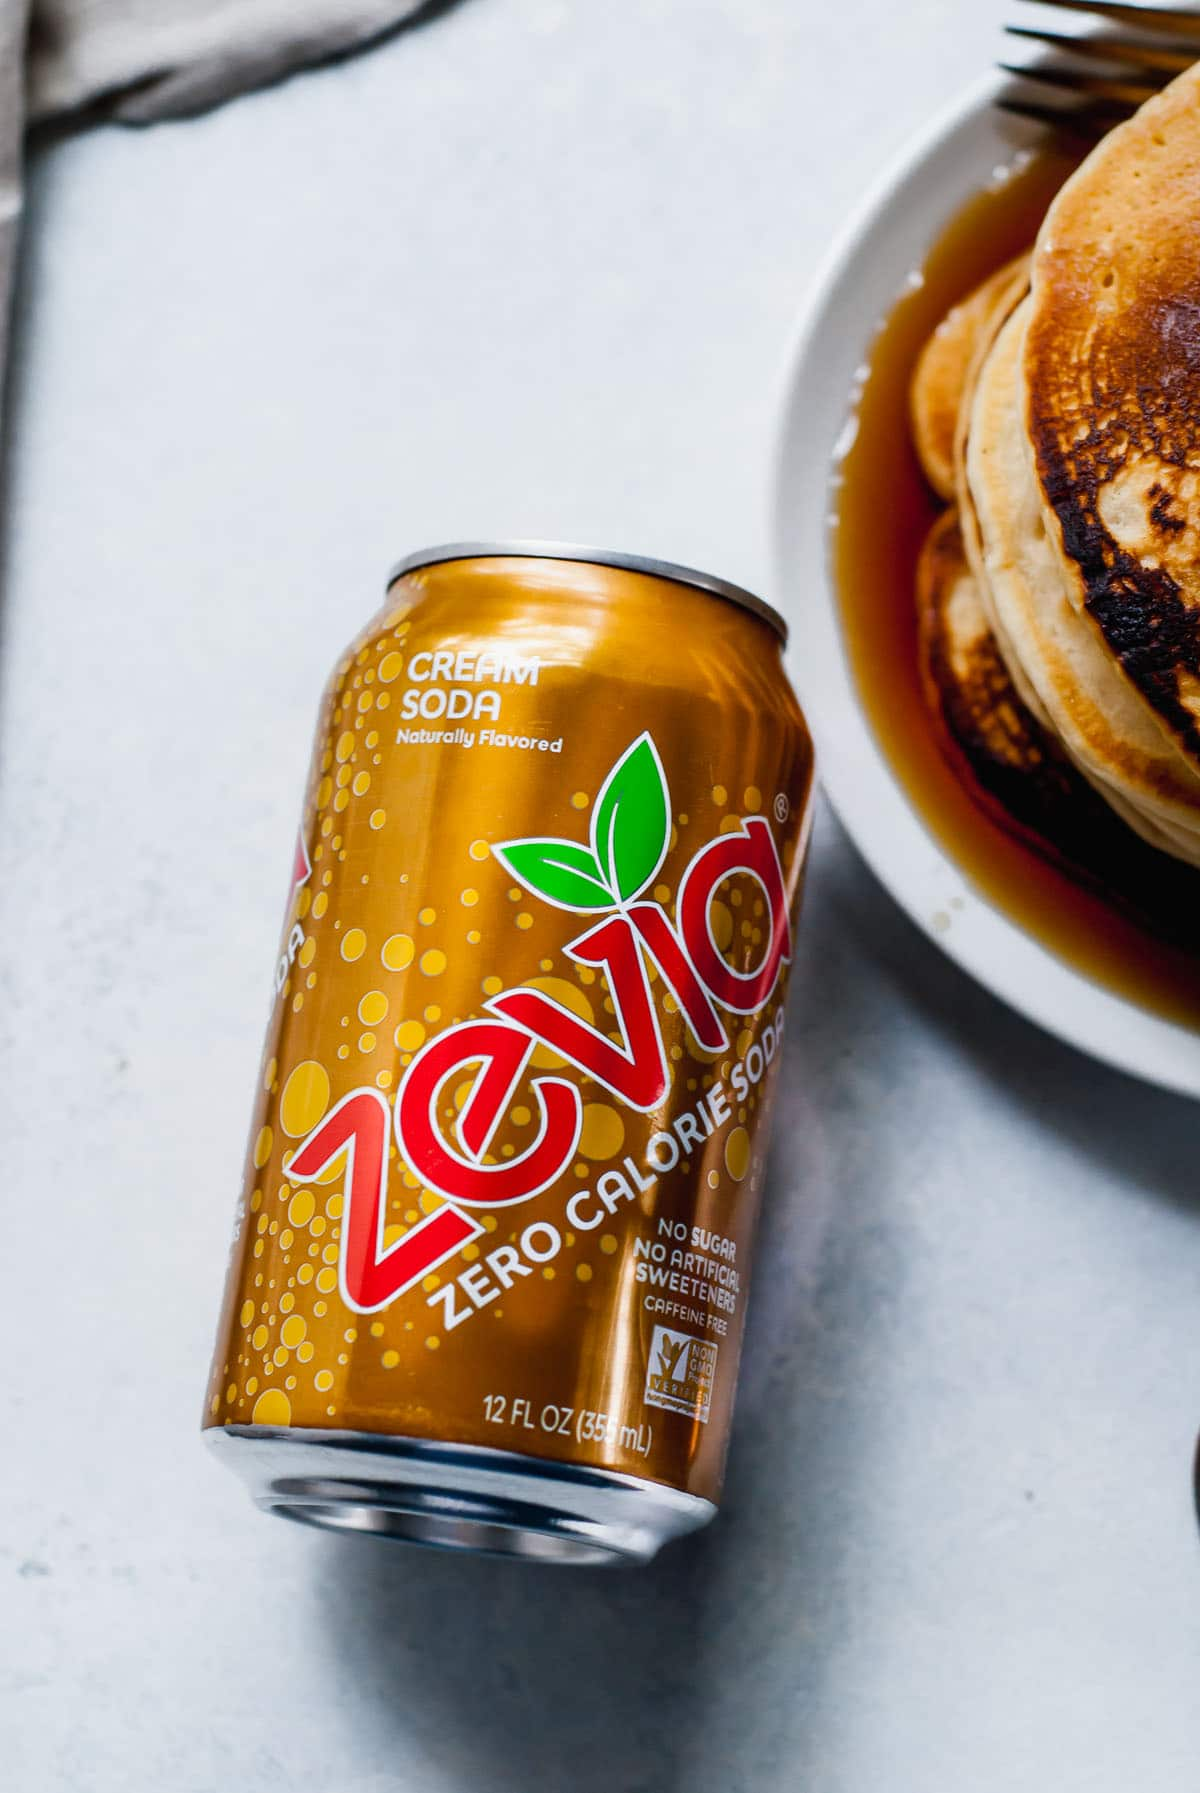 can of zevia cream soda on a light background